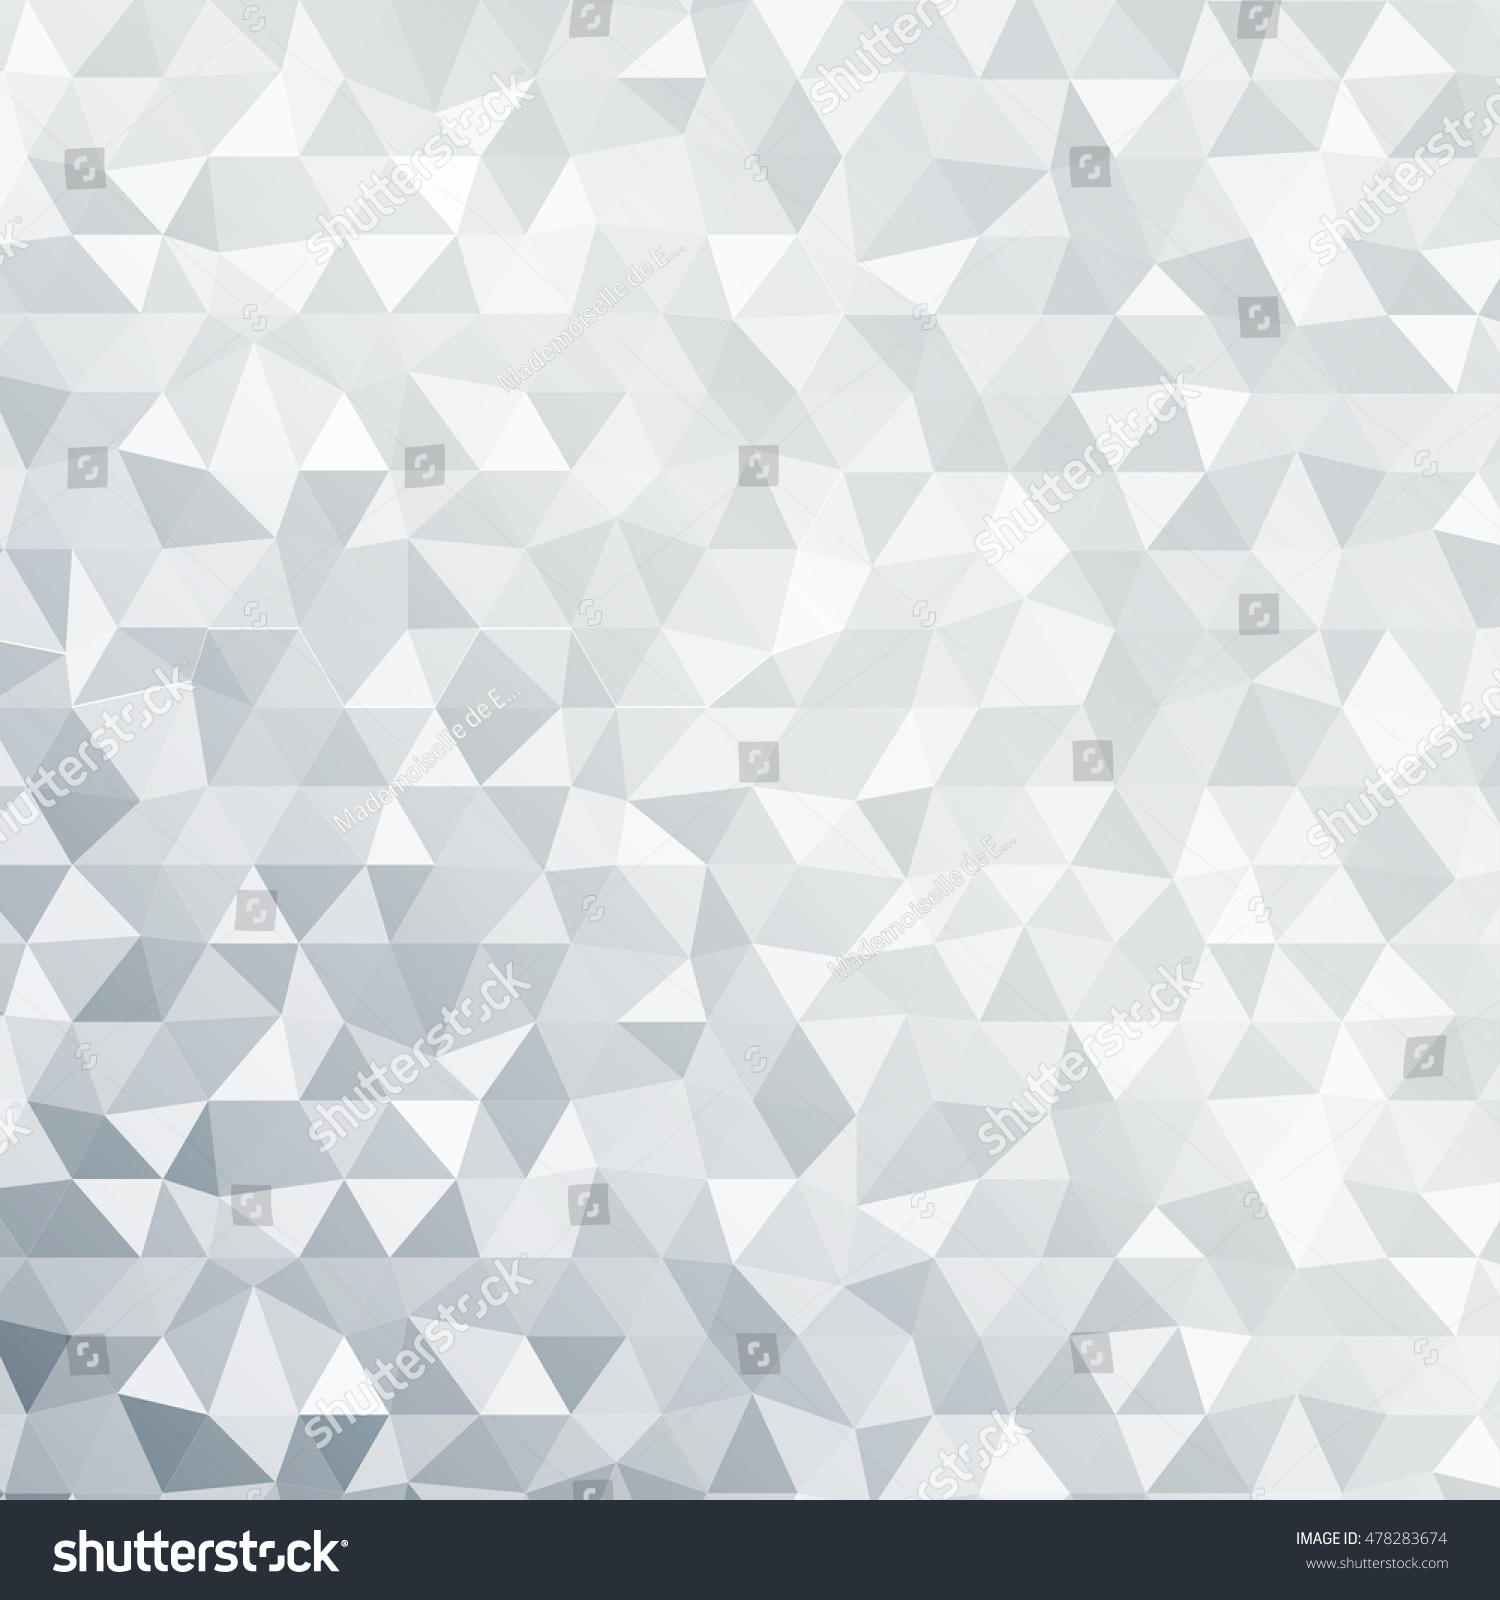 royalty polygon background silver color 478283674 stock polygon background silver color vector illustration square banner to implement your design ideas business subjects successful presentations